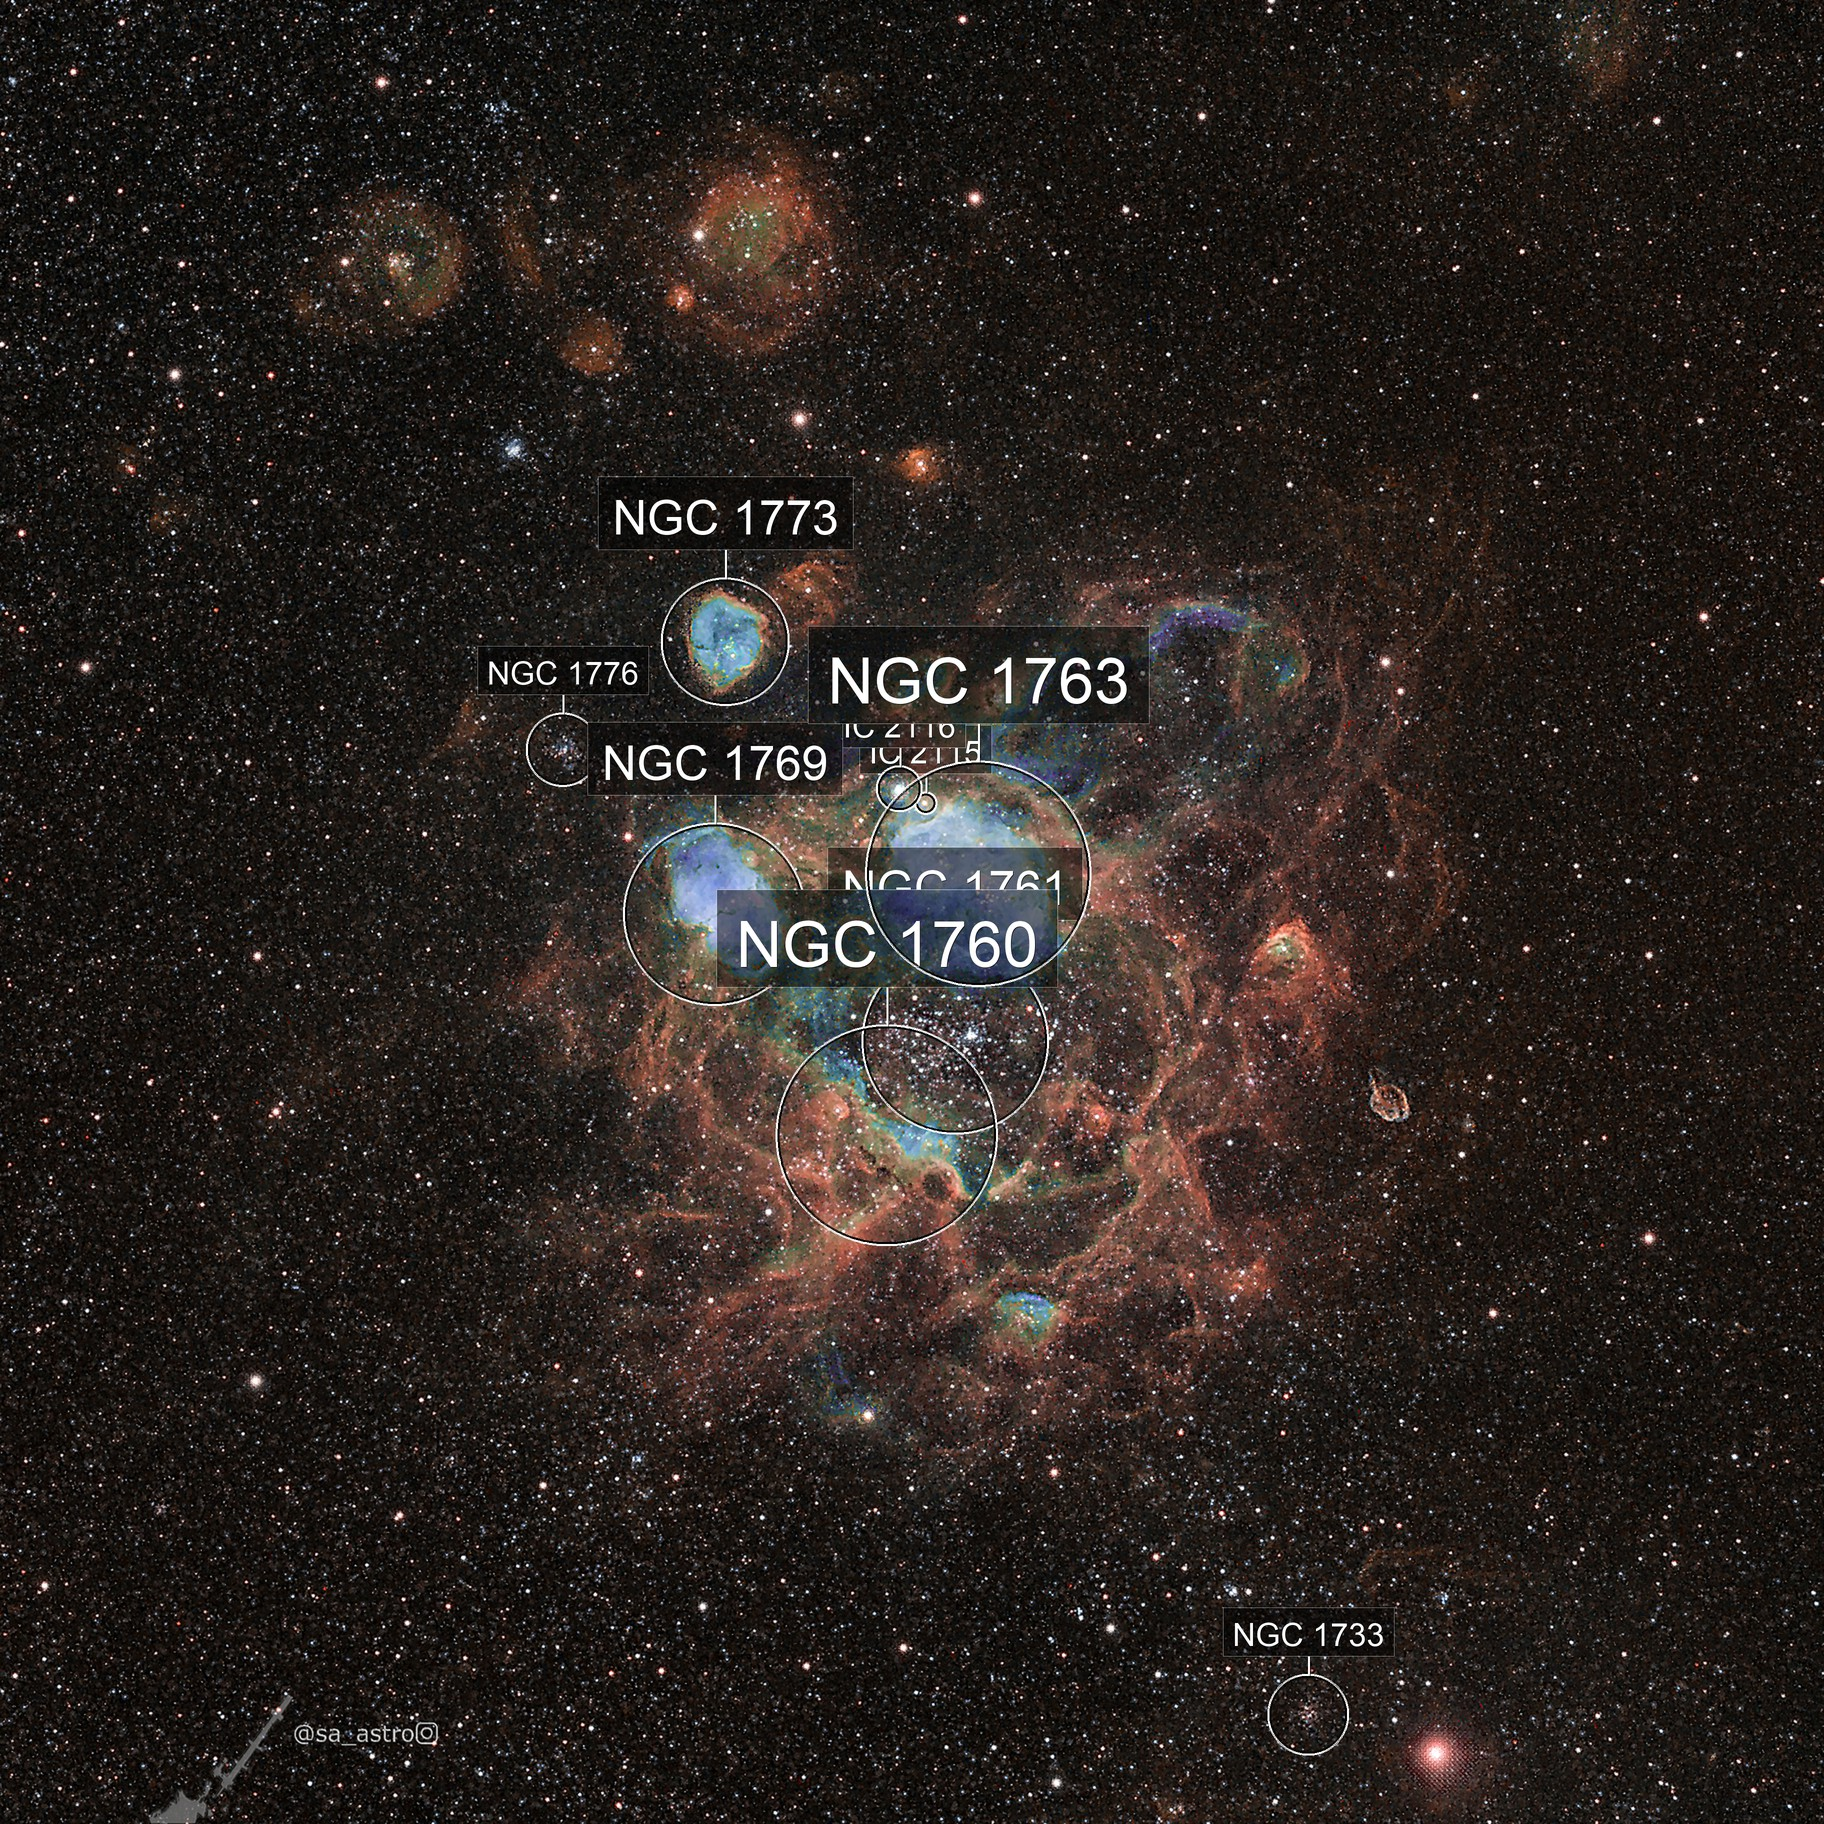 Evading the Spider (NGC 1760)